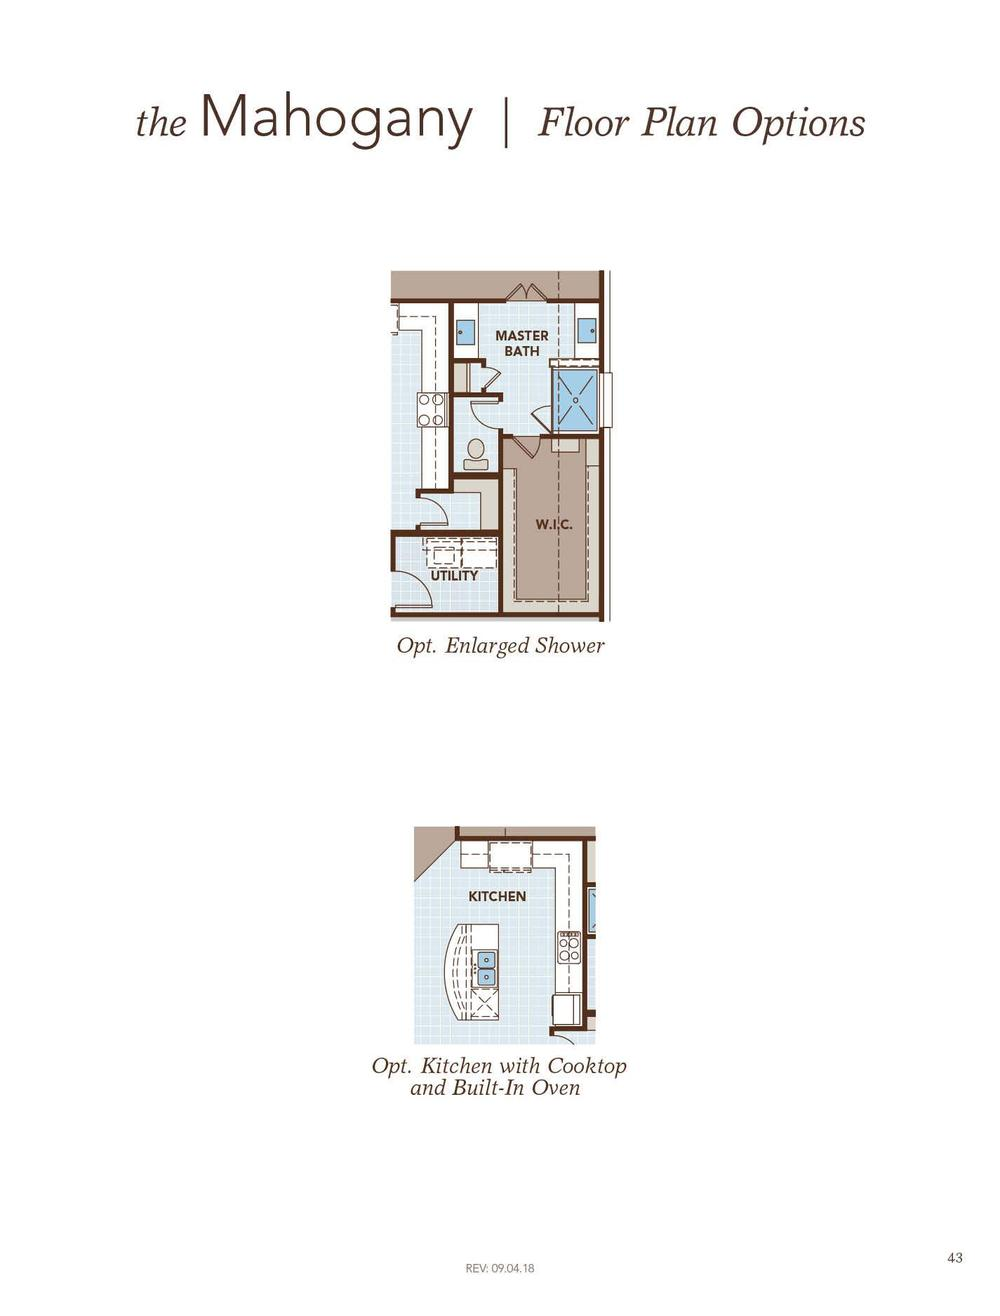 Mahogany Floor Plan Options